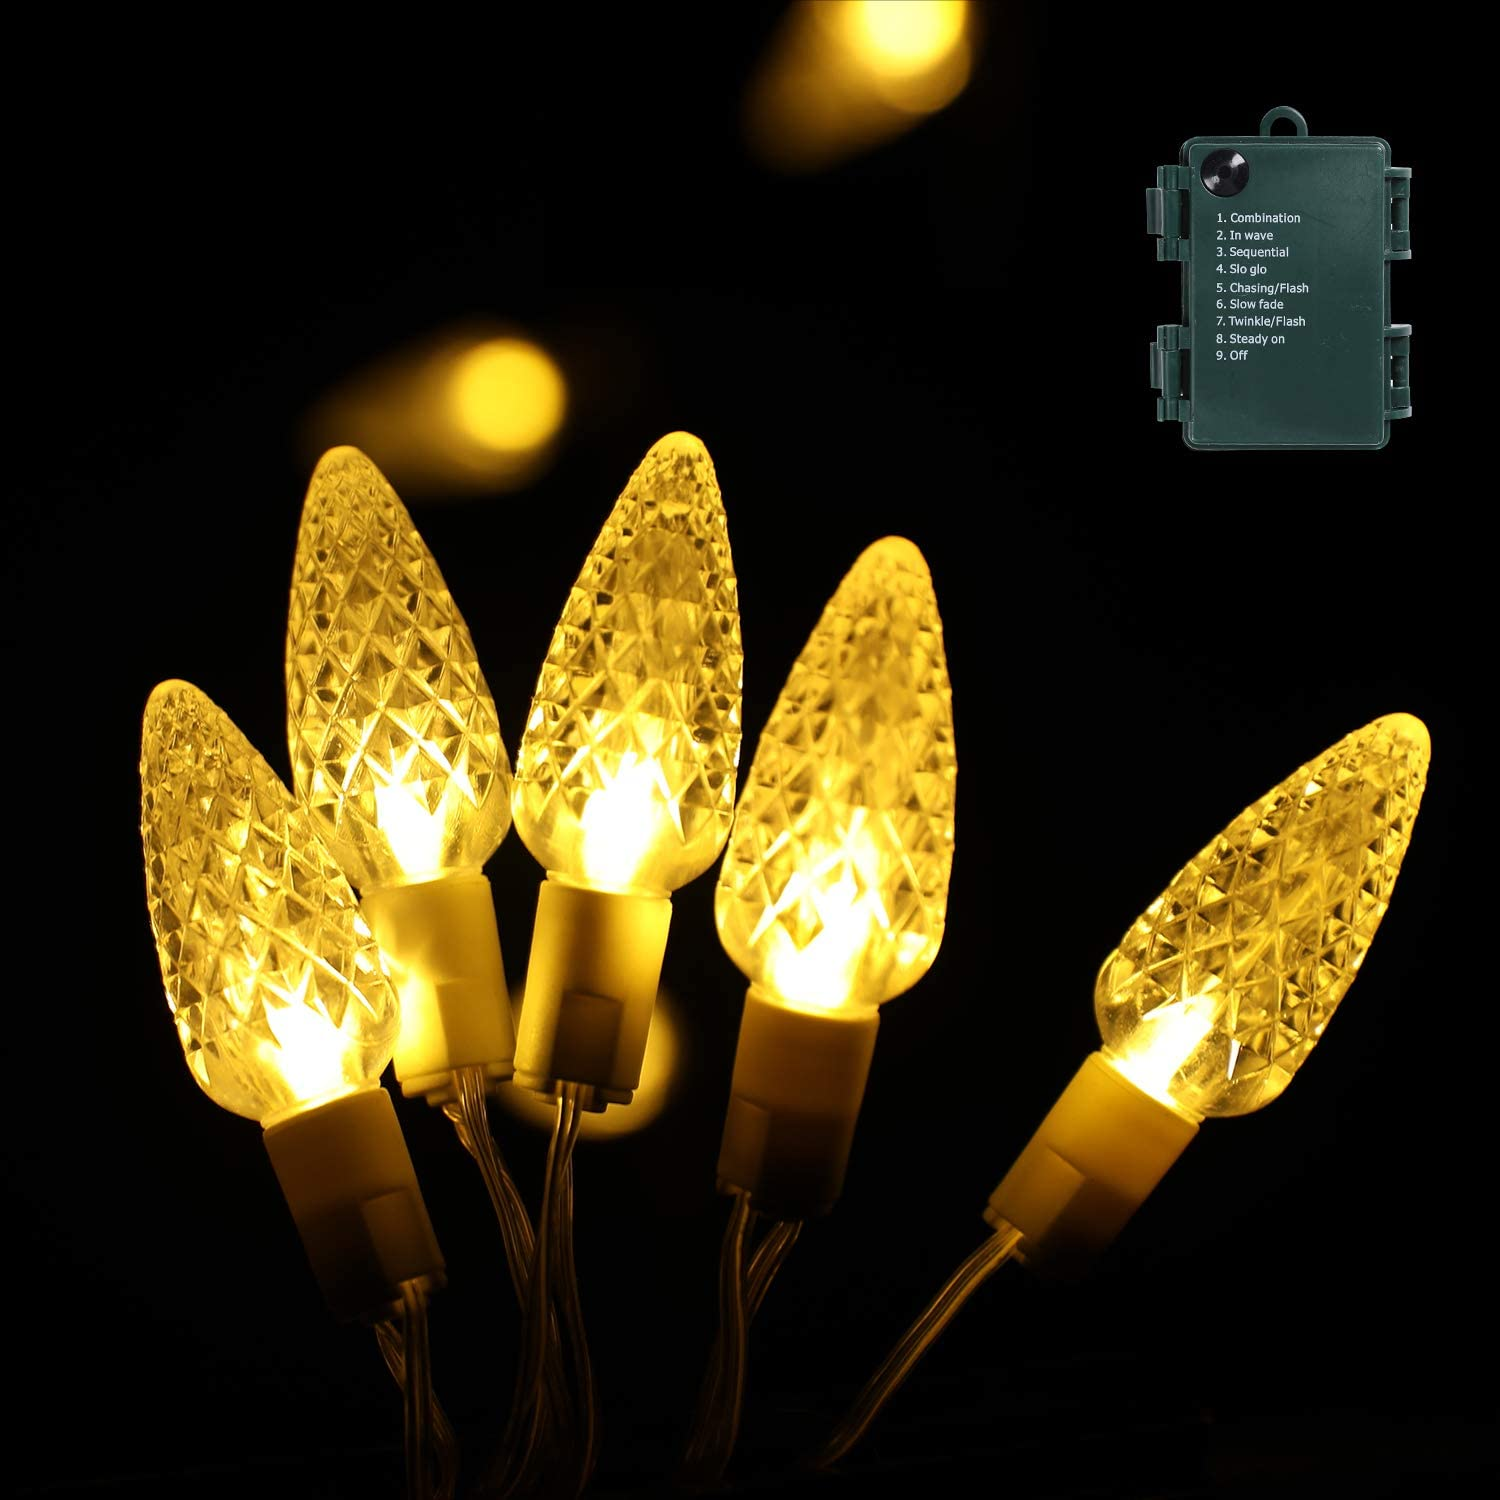 Christmas Lights, 16.4 Ft 50 Leds Strawberry Battery Operated Strings Lights 8 Modes On/Off Timer for Xmas Tree Indoor Outdoor Christmas Decorations